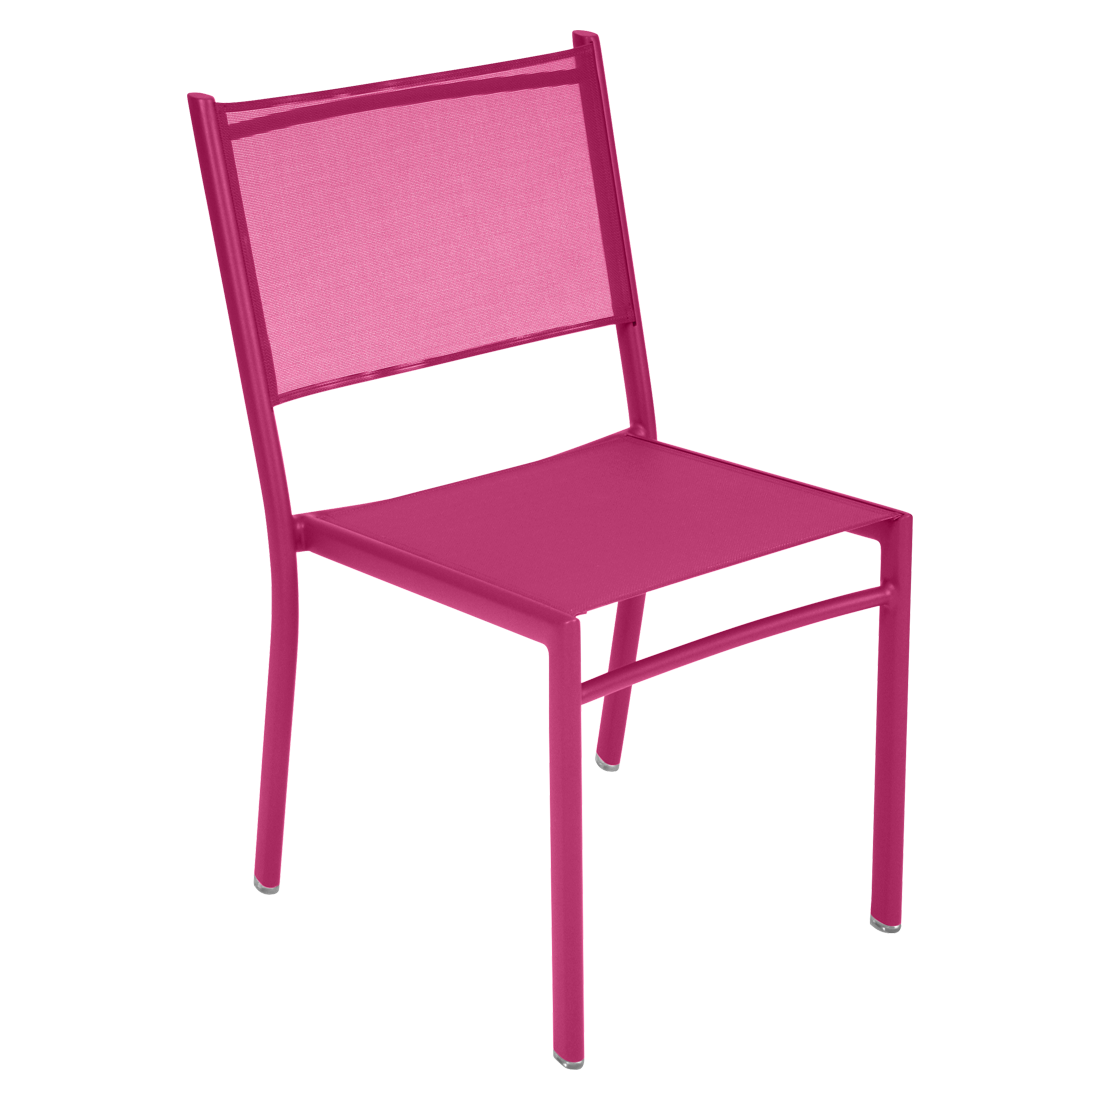 Beach lounge chair png - Chair